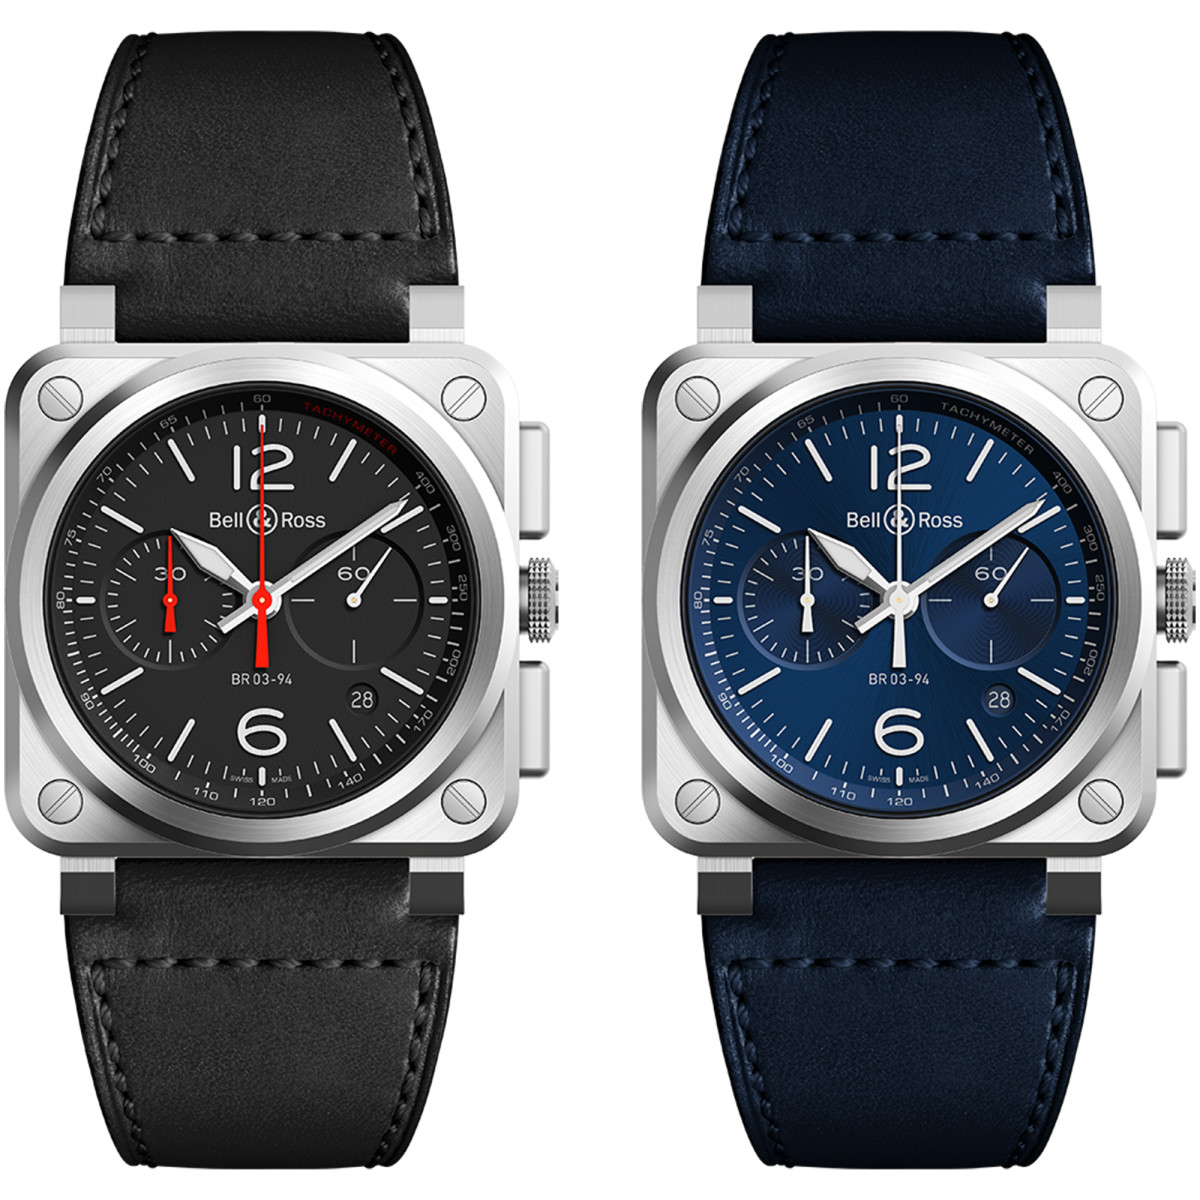 Bell & Ross Blue and Black Steel